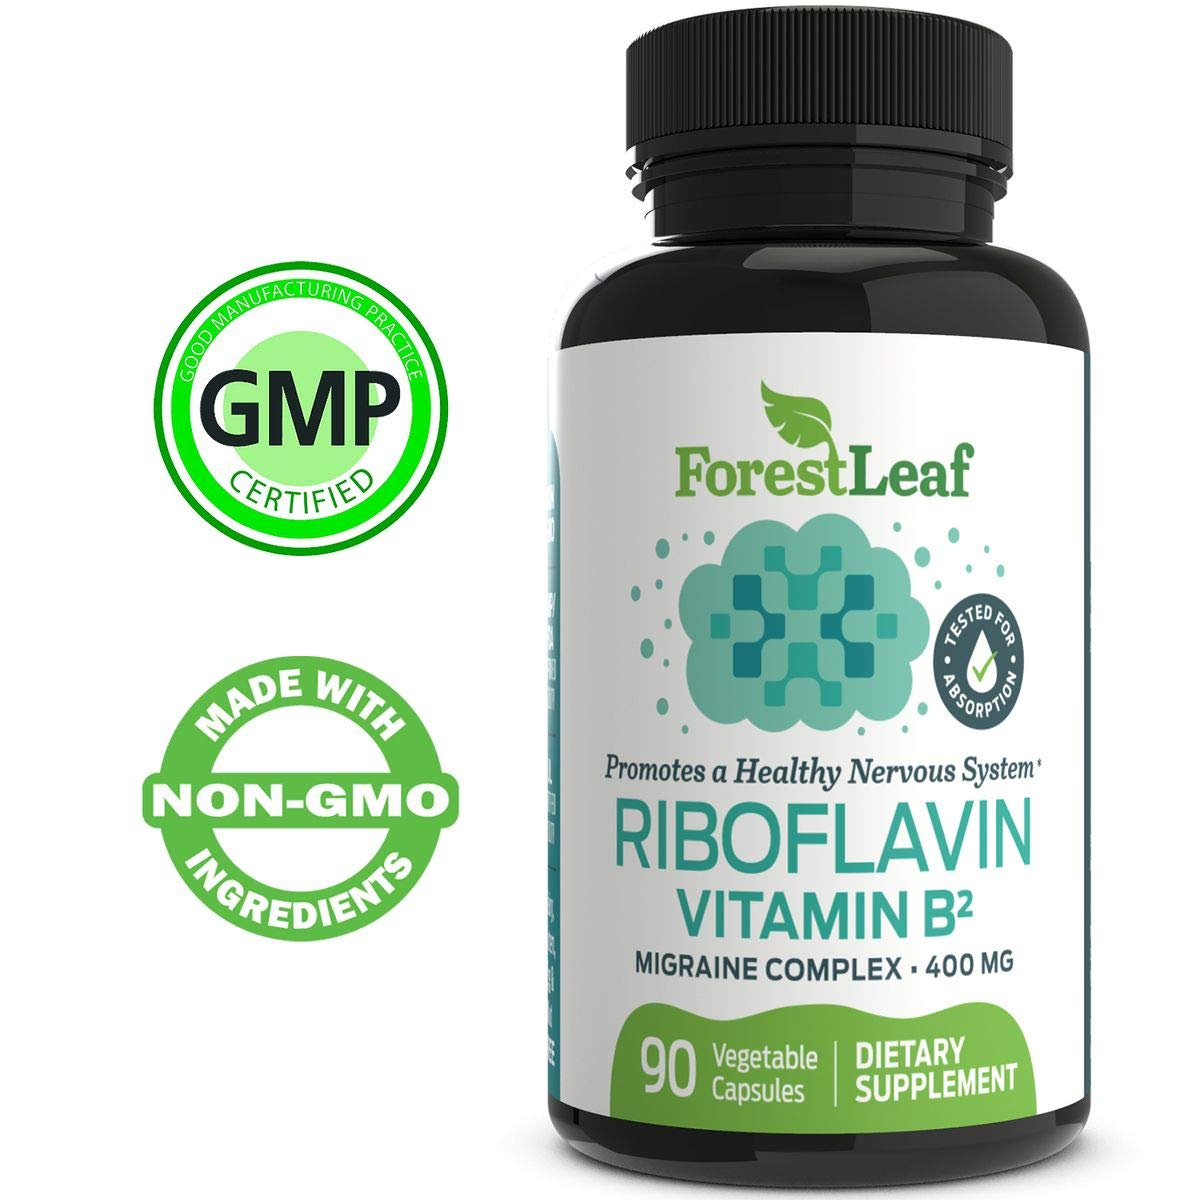 Vitamin B2 Riboflavin, 400mg - 90 Capsules - Promotes Healthier Blood, Nervous System and Helps Boost Energy and Metabolism - Non-GMO, Gluten Free Daily Dietary Supplement - by ForestLeaf by ForestLeaf